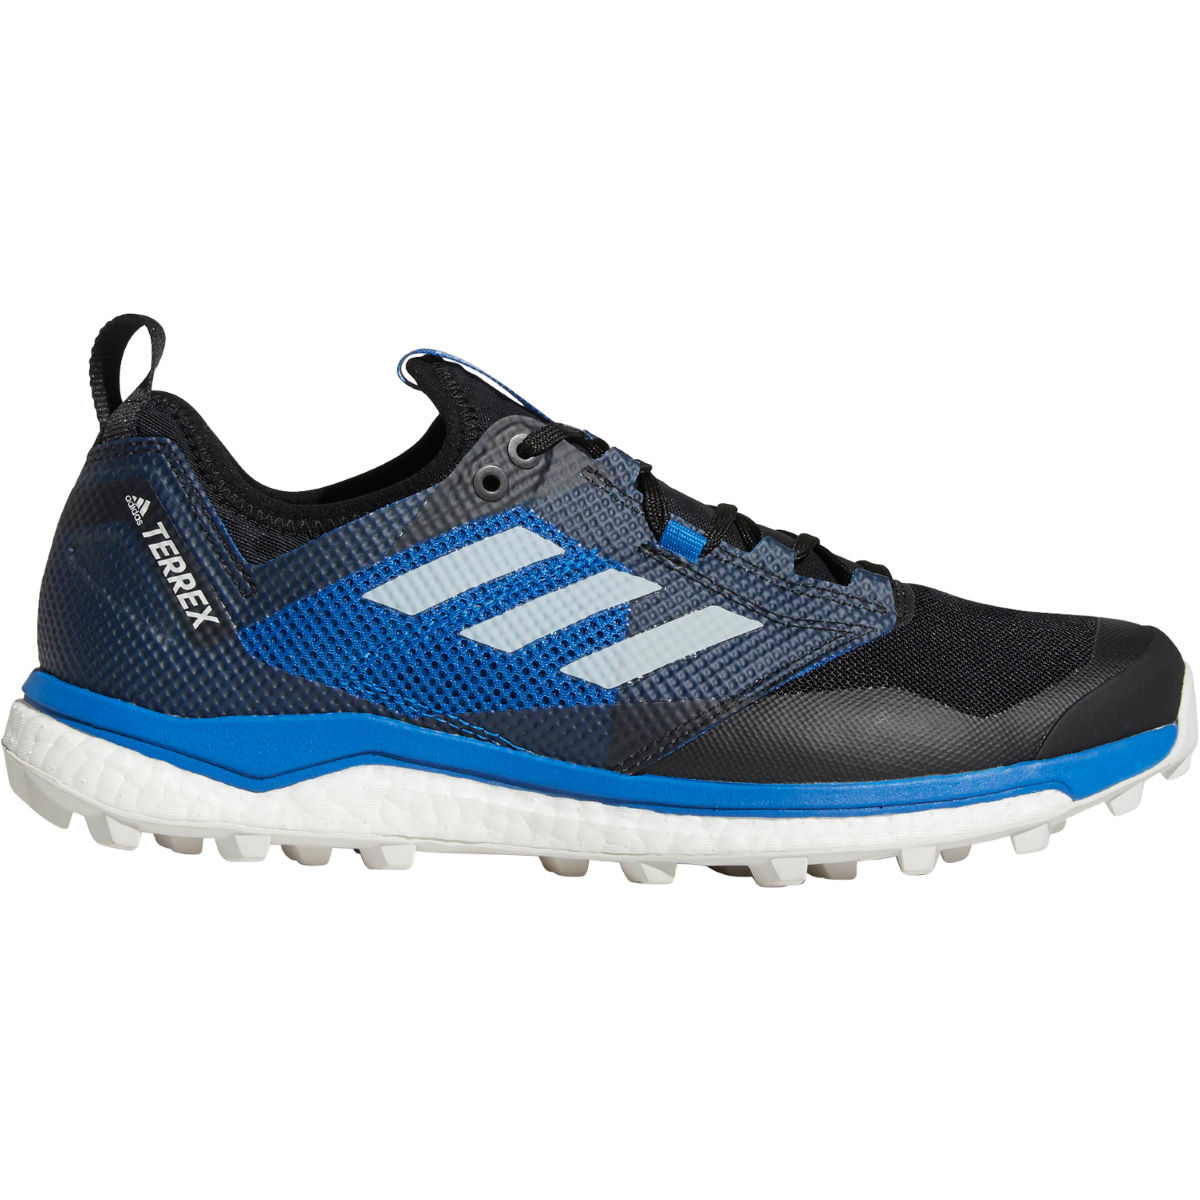 adidas Terrex Agravic XT Shoes - Zapatillas de trail running